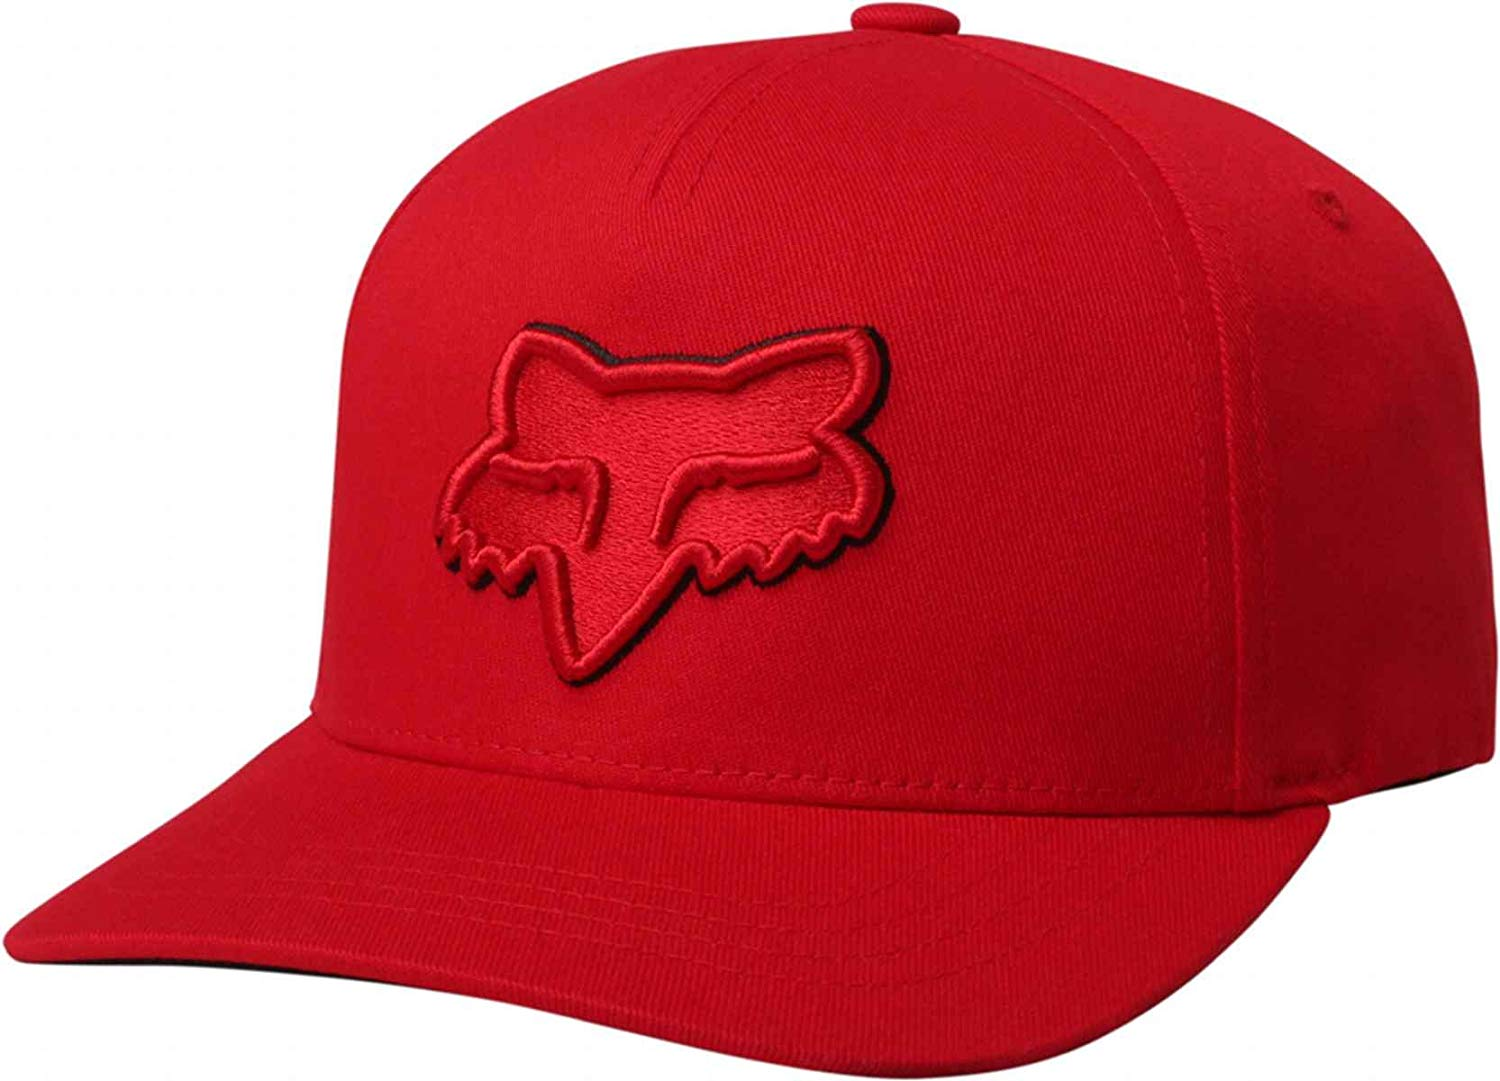 735a8187eed Get Quotations · Fox Racing Kids Epicycle 110 Snapback - 21230